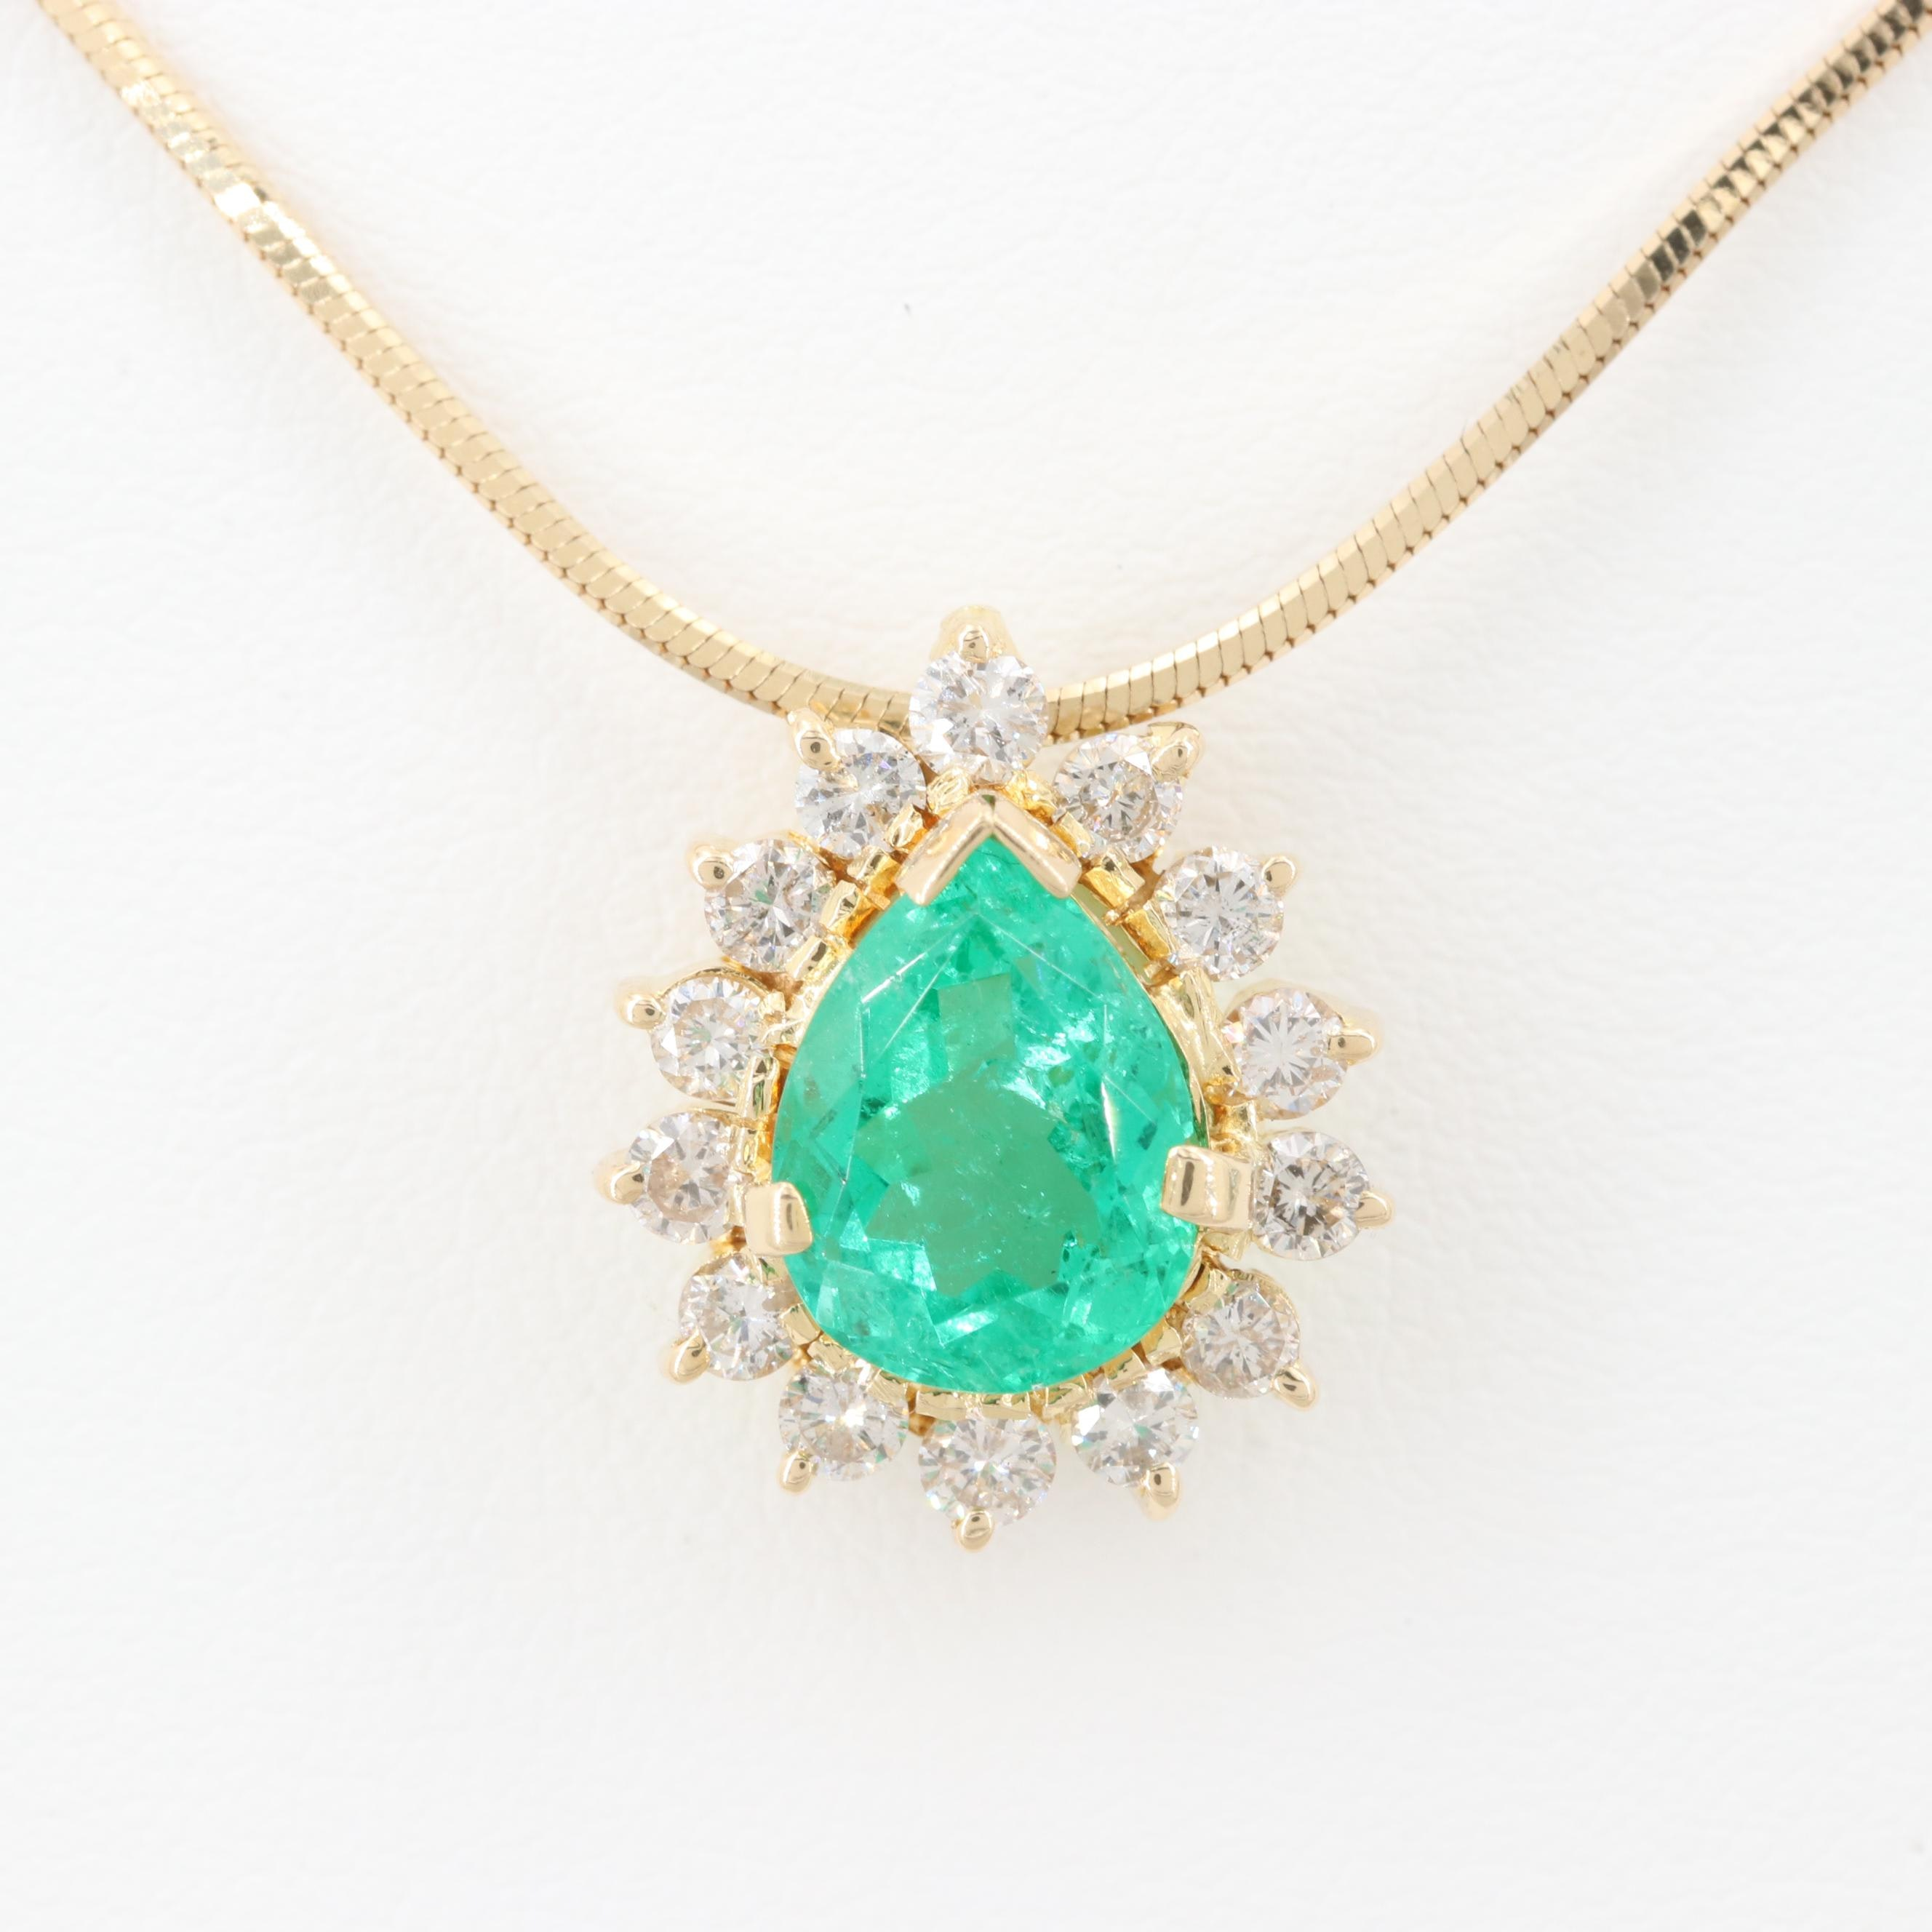 18K Yellow Gold 1.87 CT Emerald and Diamond Pendant on 14K Yellow Gold Chain